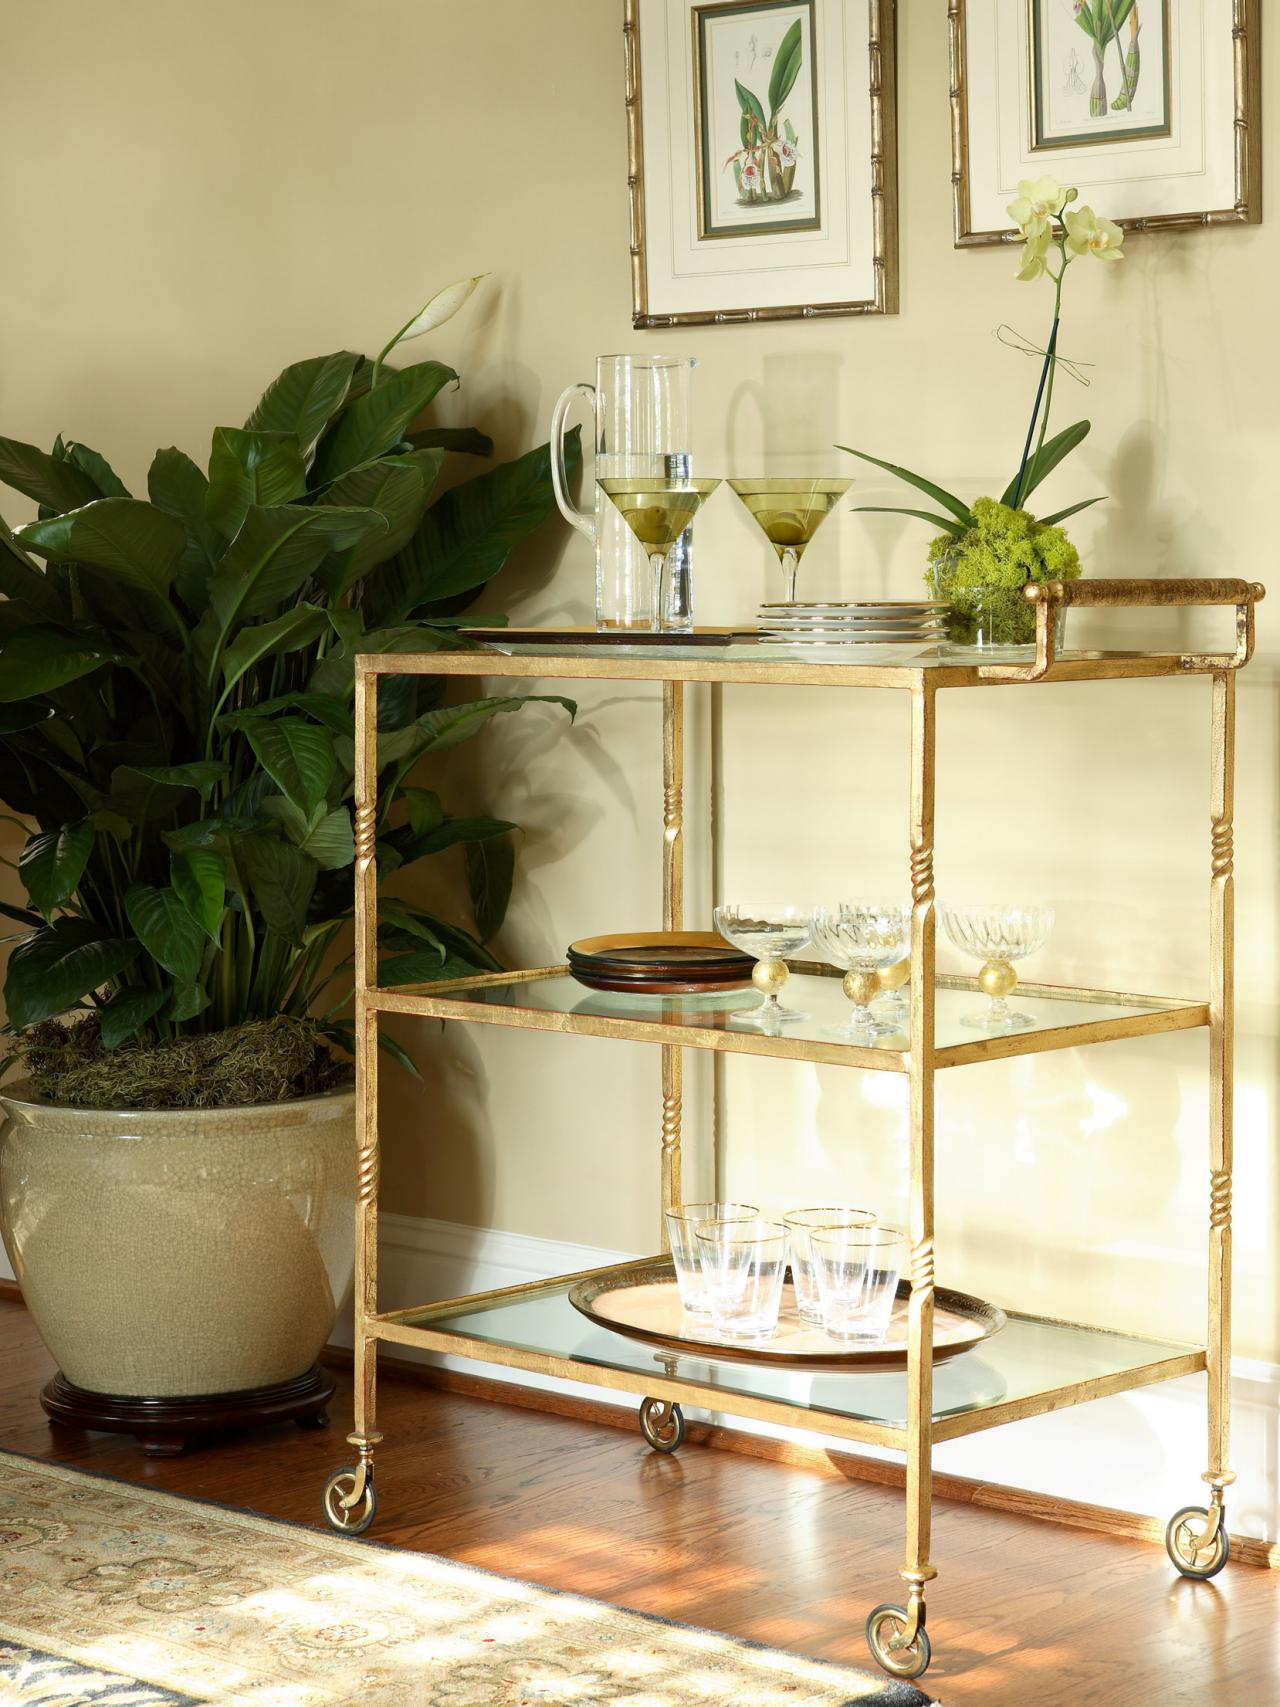 Exciting bar carts for bar furniture ideas with gold bar cart and diy bar cart